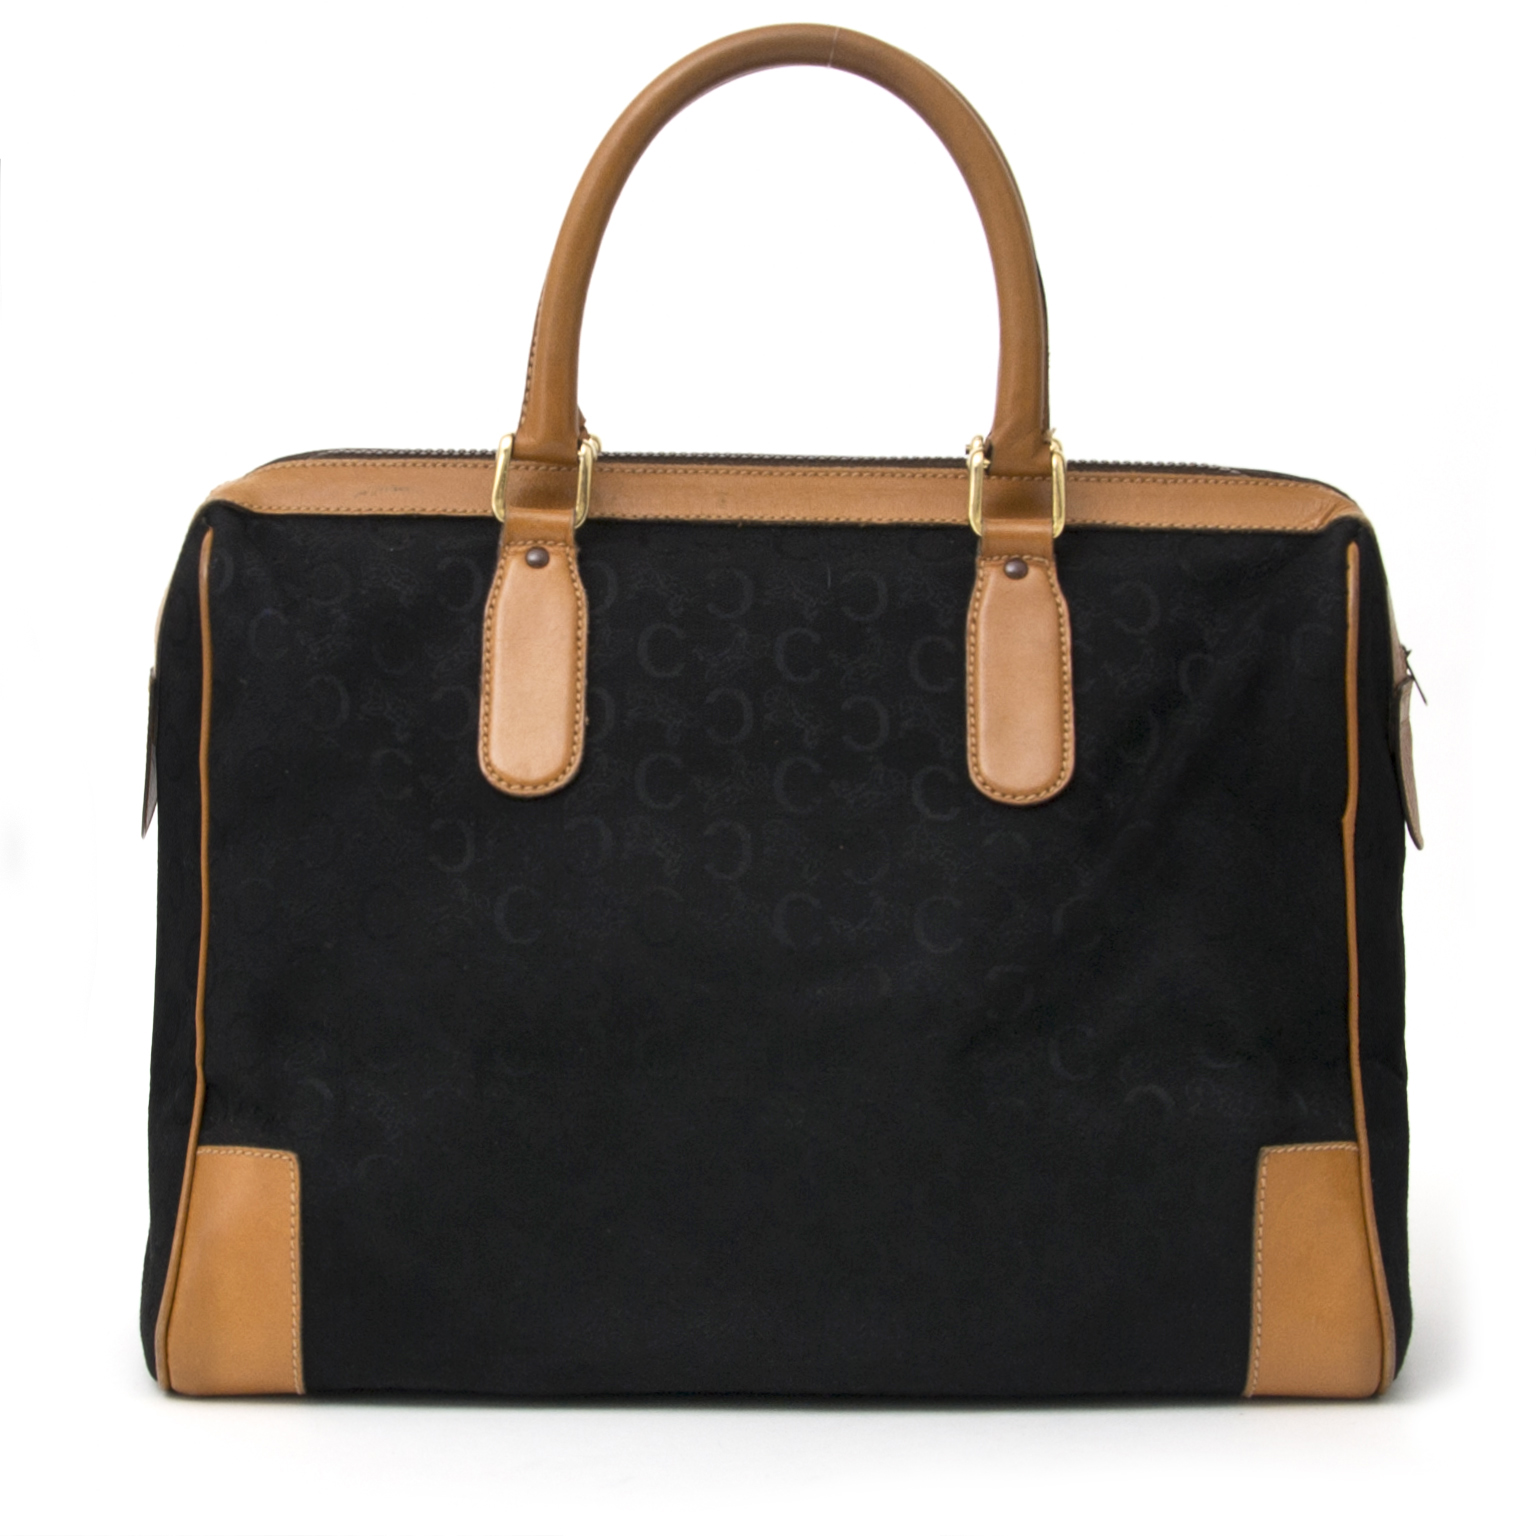 Shop safe online: authentic vintage Celine bags and accessories ...